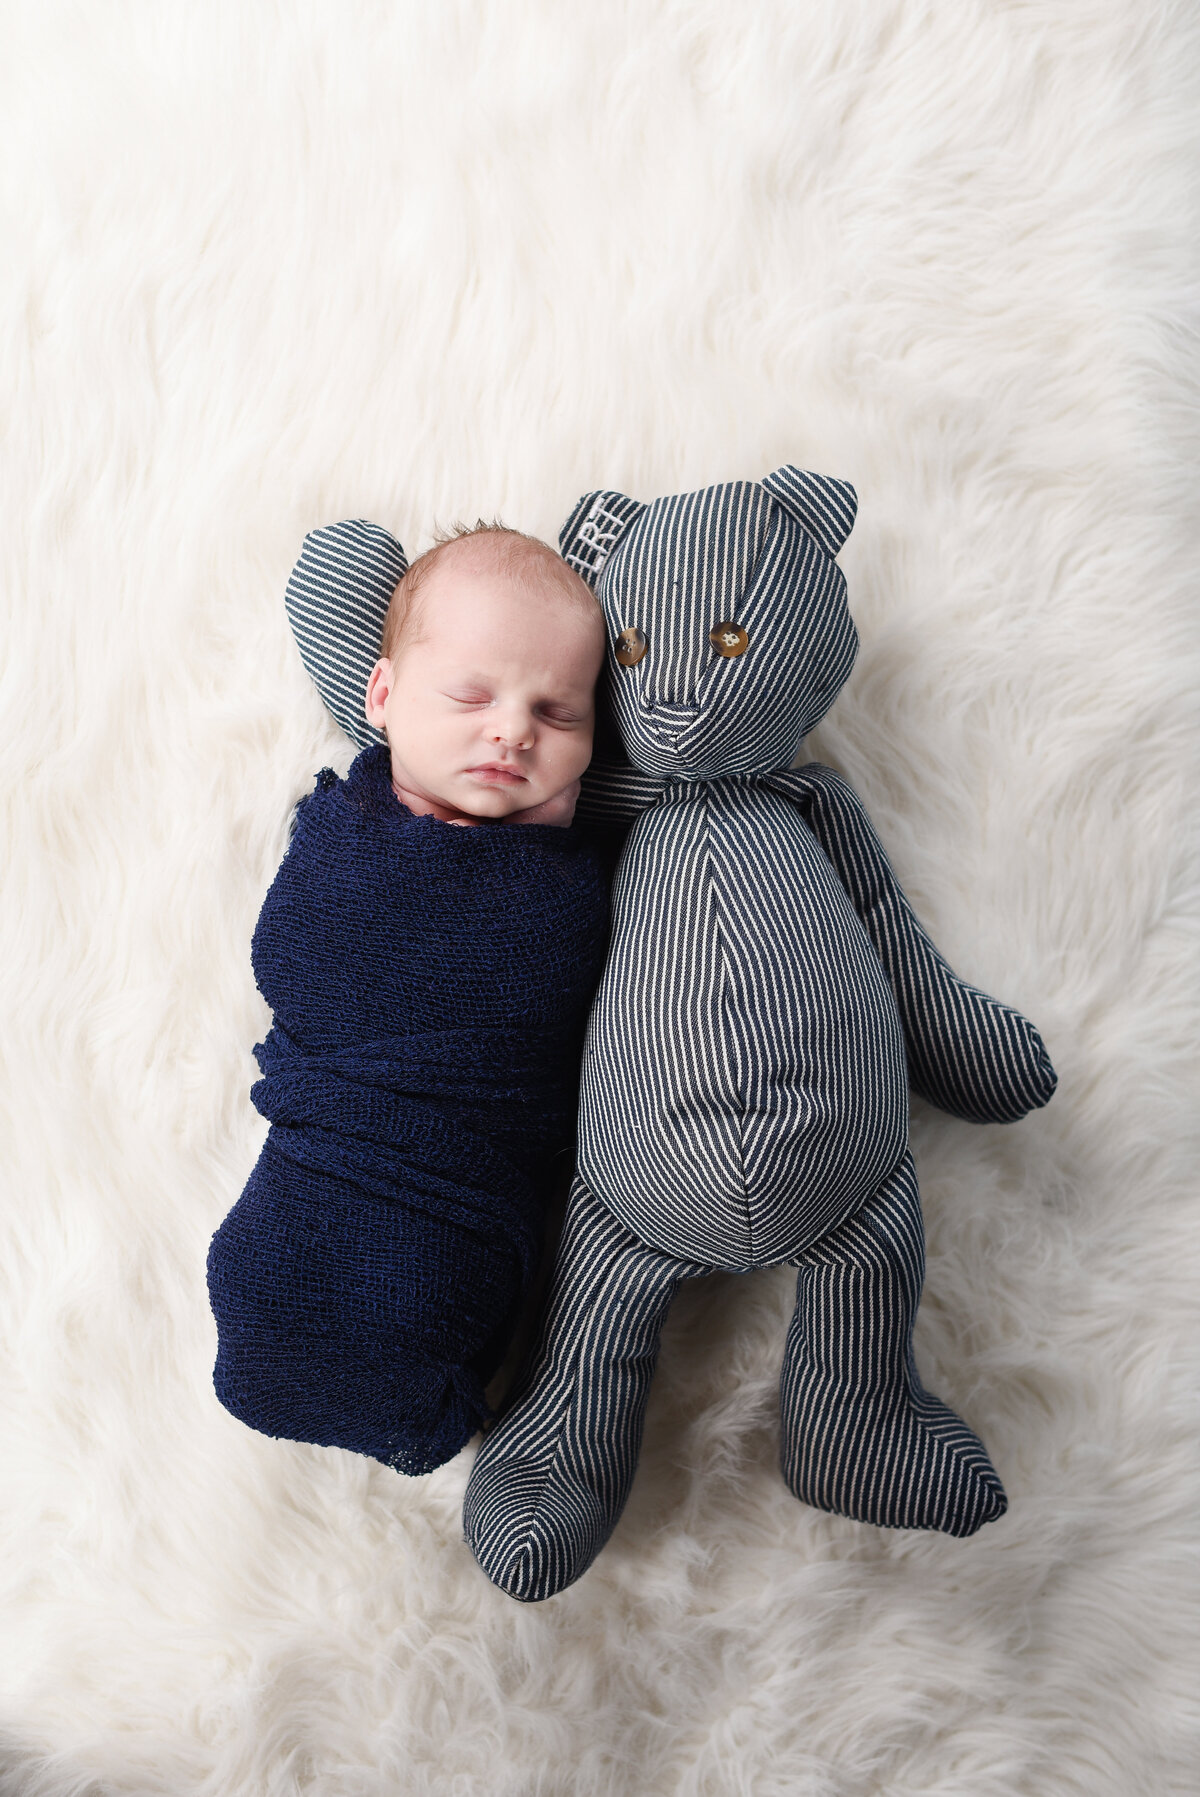 Beautiful Mississippi newborn photography: newborn boy with a teddy bear made from his grandfather's overalls in Mississippi